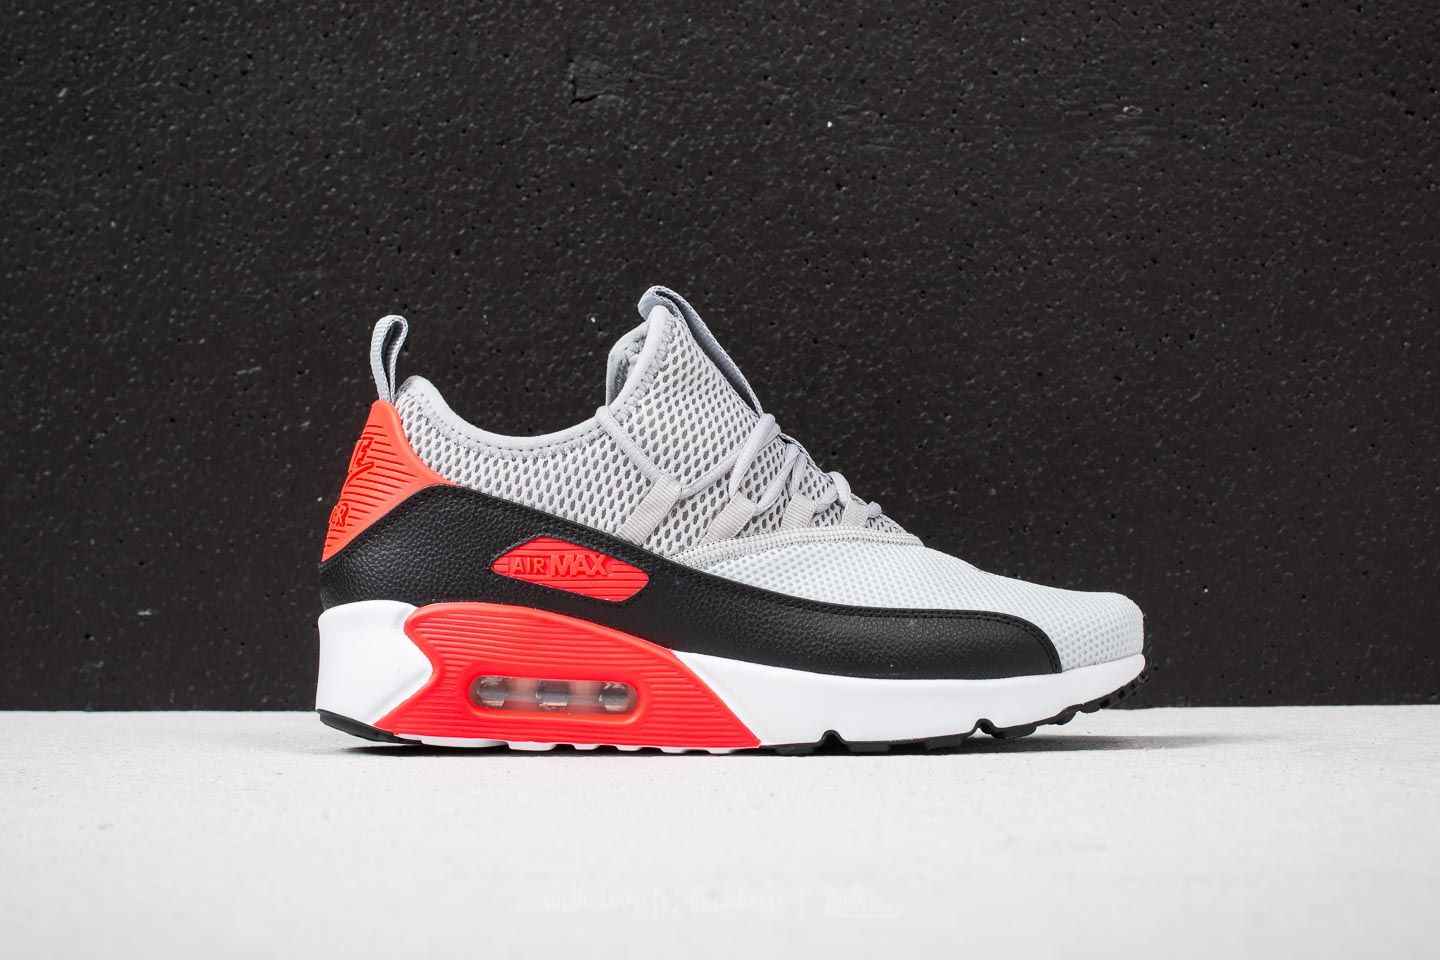 newest 5117e 61a1c Nike Air Max 90 EZ Pure Platinum Wolf Grey-Black at a great price